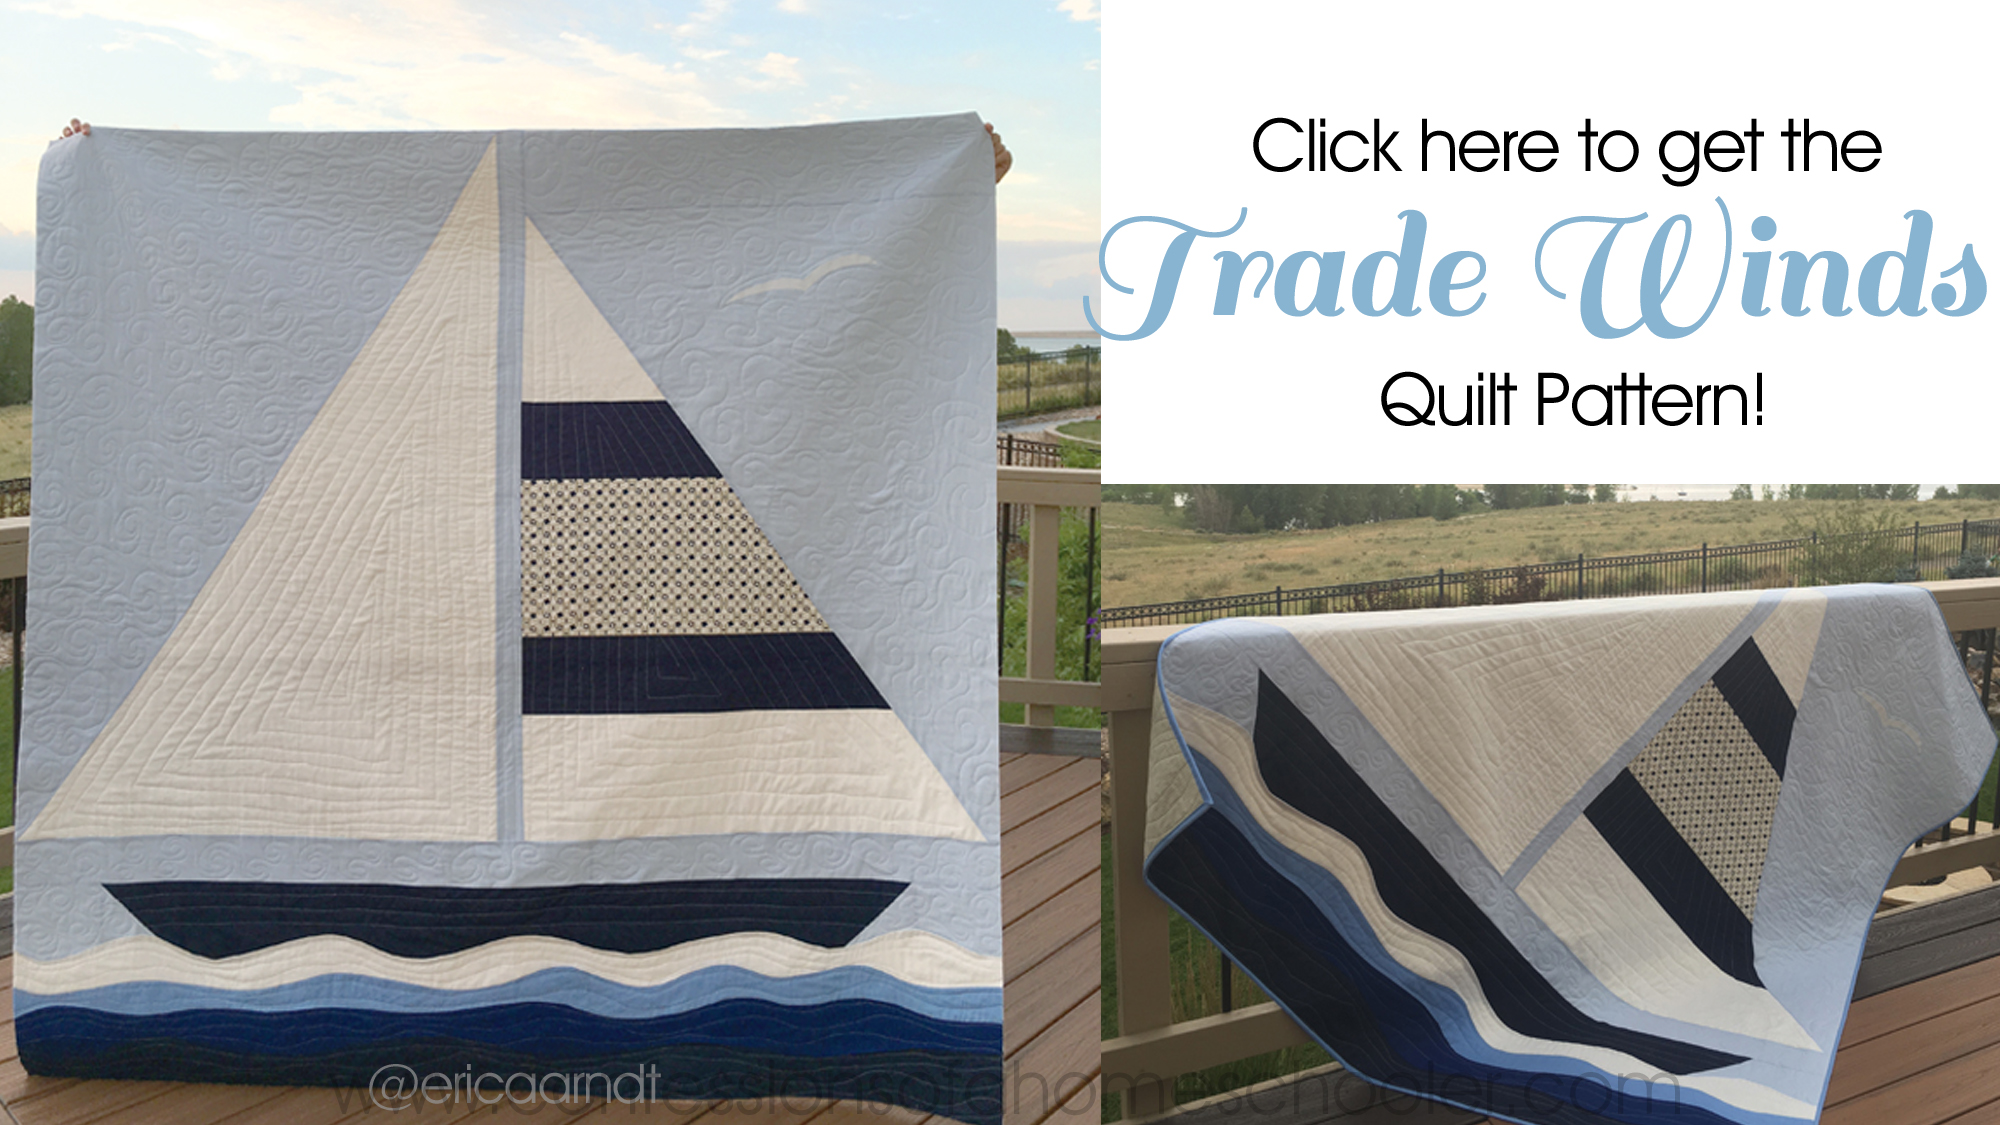 Trade Winds Quilt Pattern & Sale!!